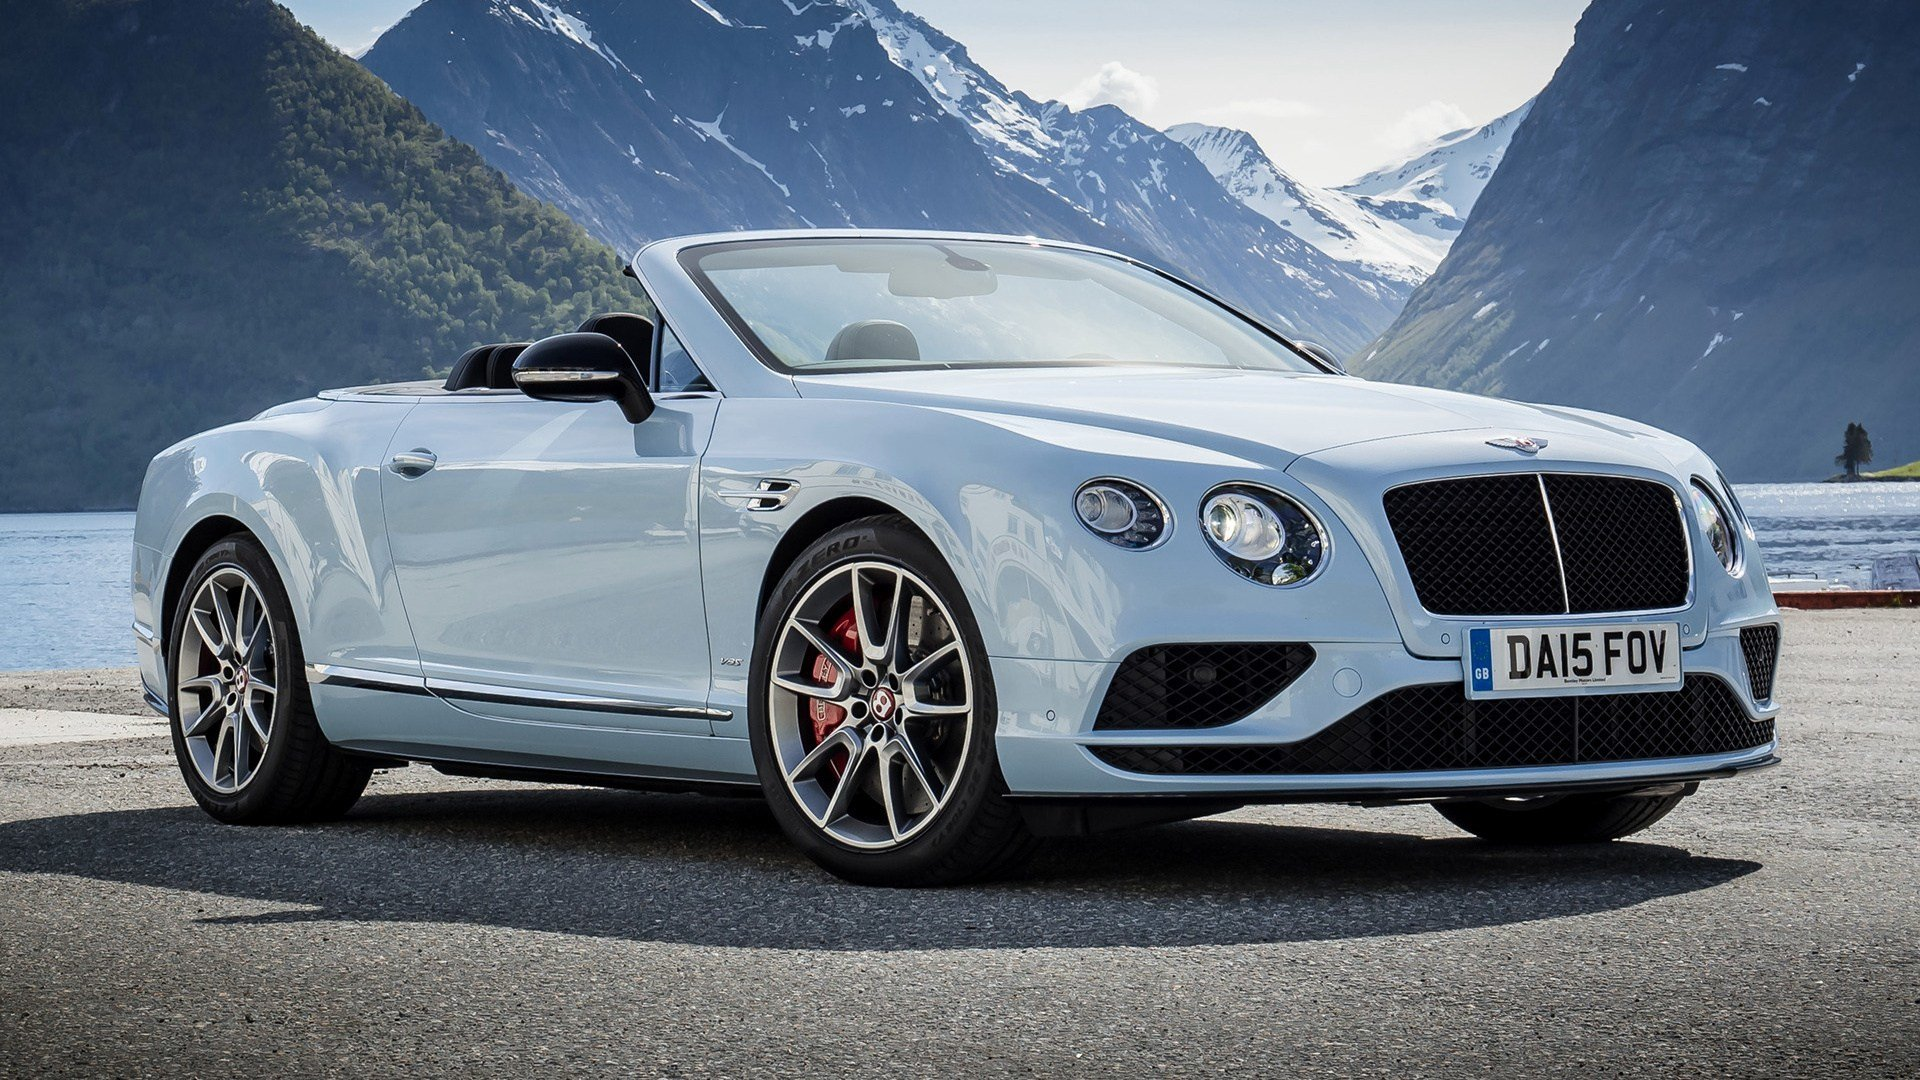 Latest 2015 Bentley Continental Gt V8 S Convertible Wallpapers Free Download